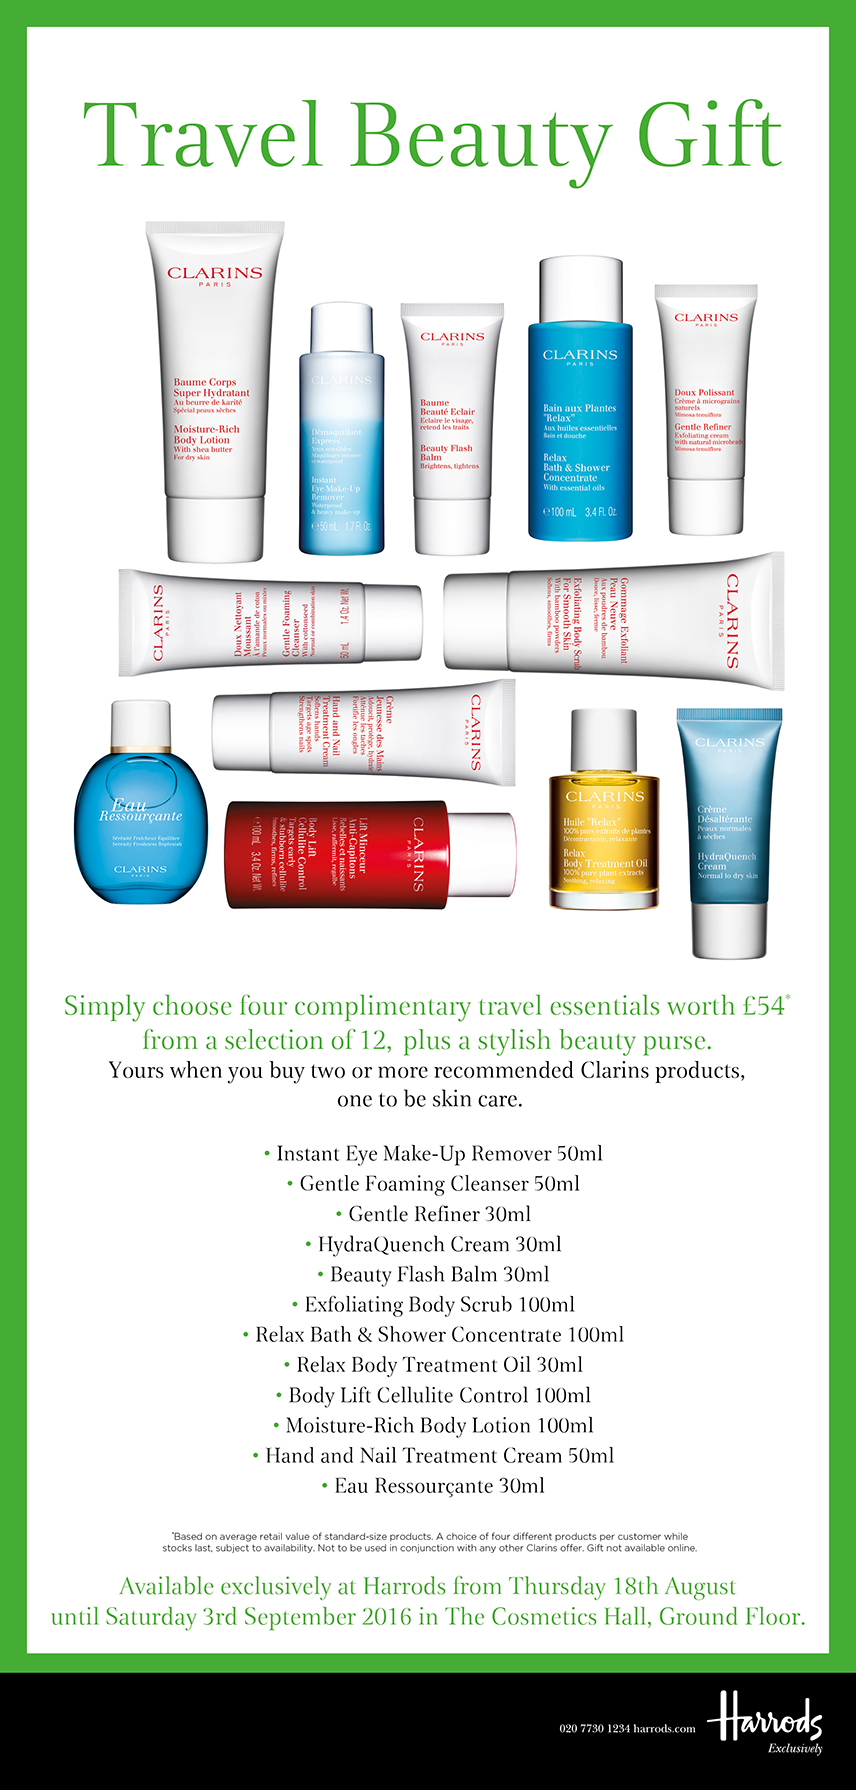 Harrods Travel Beauty Gift Clarins